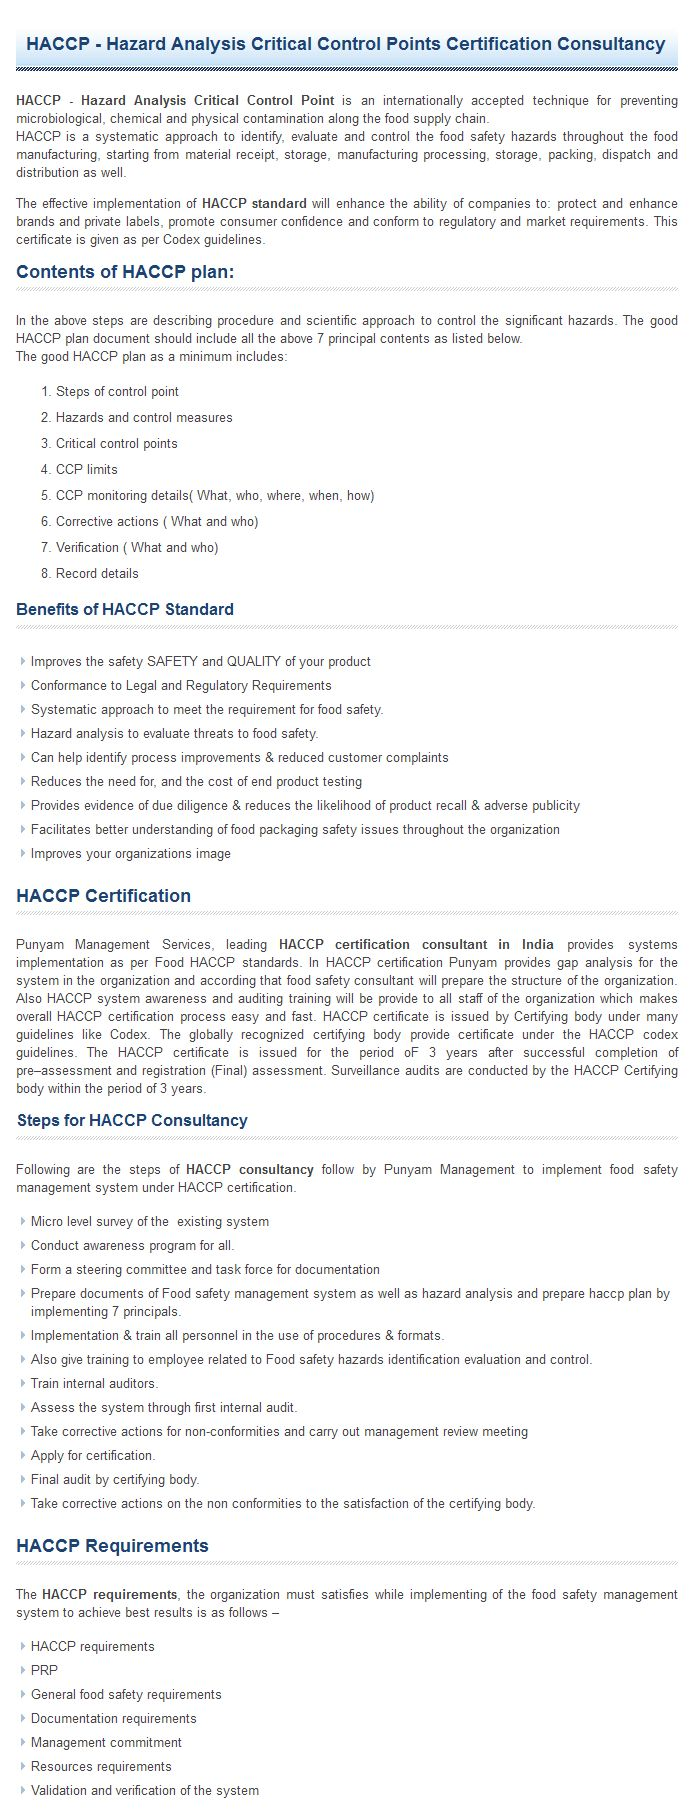 13 best HACCP images on Pinterest | Food safety, Food handling and ...